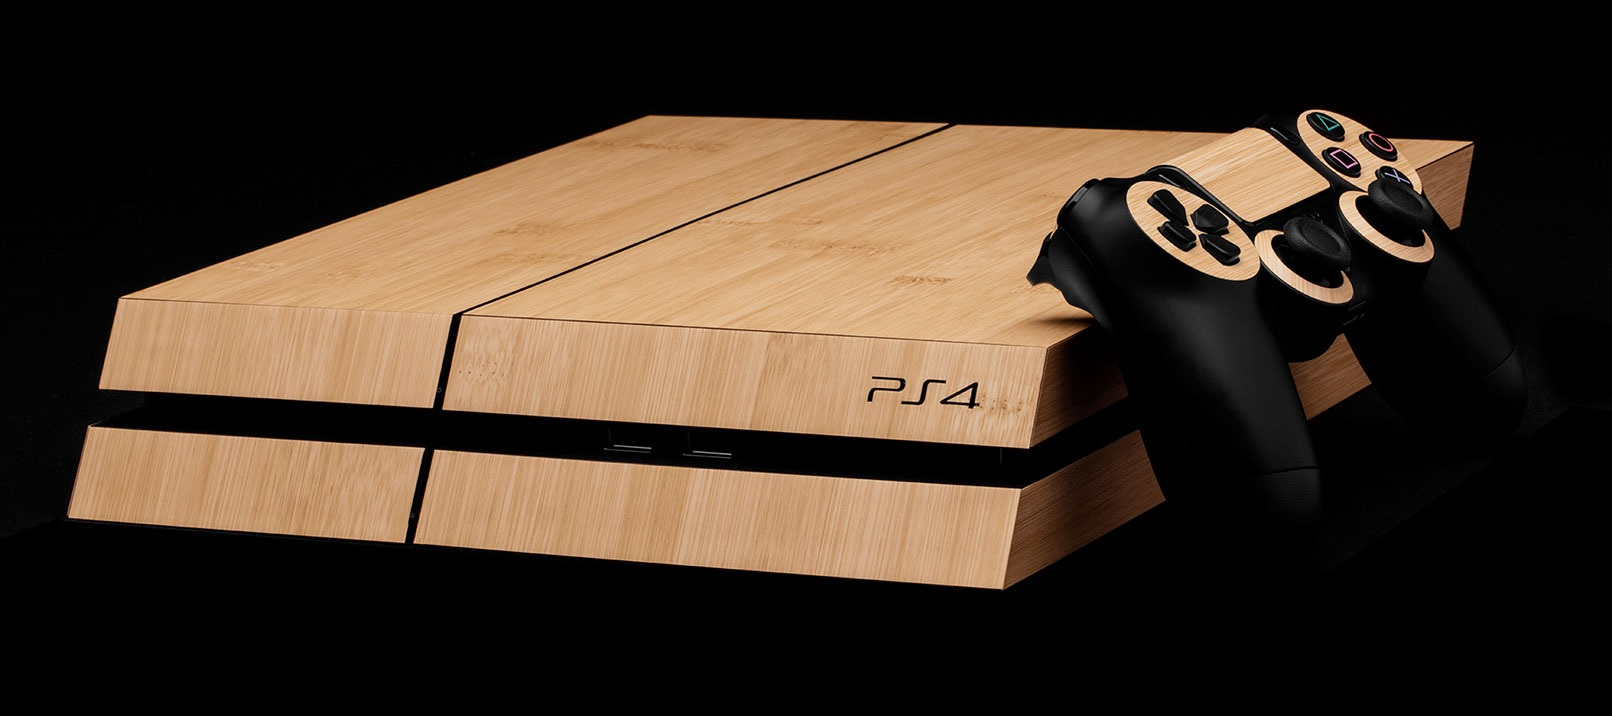 Wrap Up Your PS4 for Extra Protection